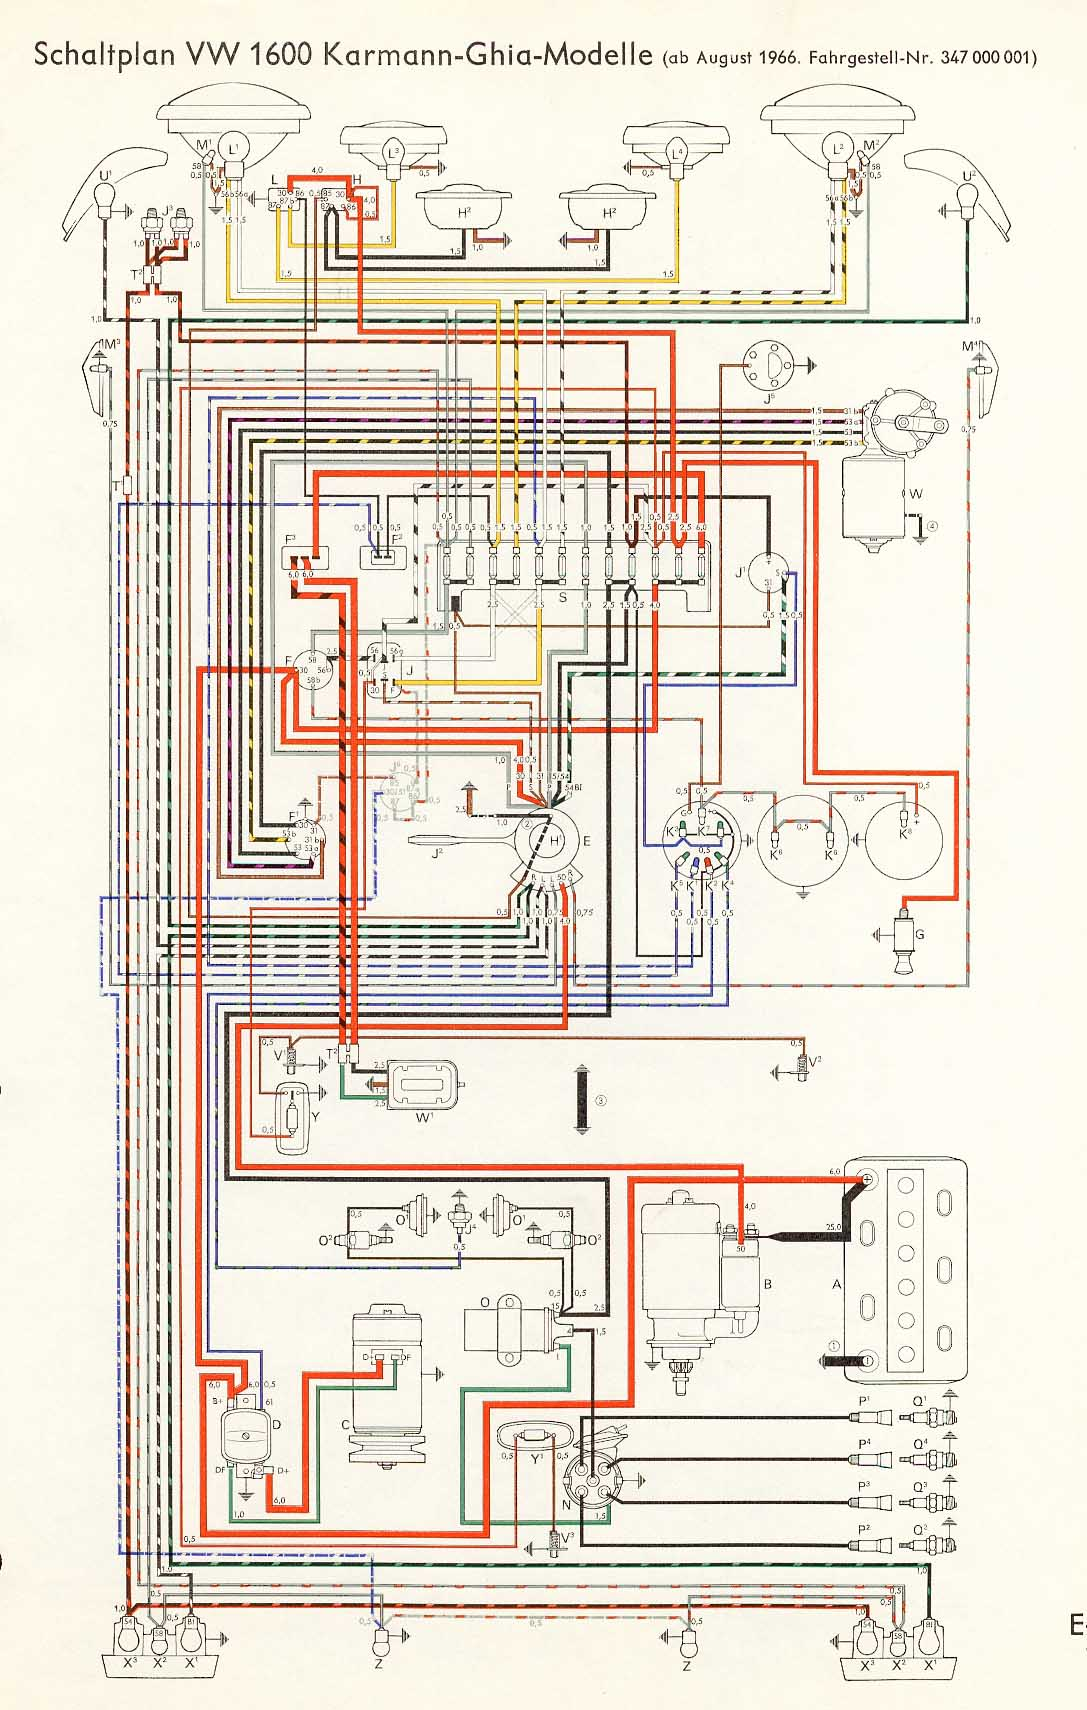 1970 Vw Tach Wiring Diagram Great Design Of 74 Alternator Karmann Ghia 32 1974 Bug